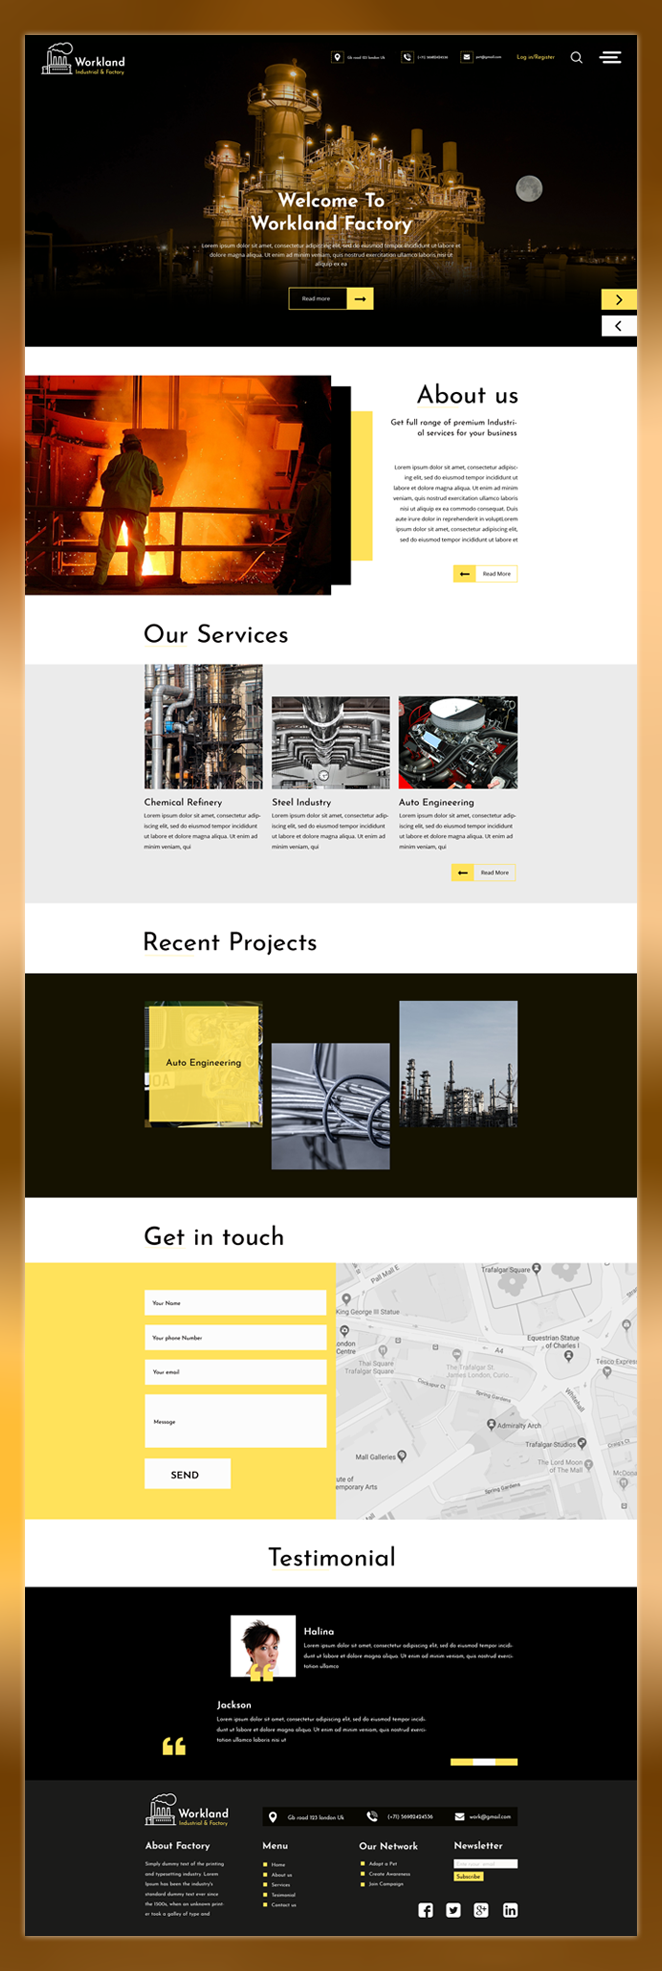 Workland industrial factory psd template